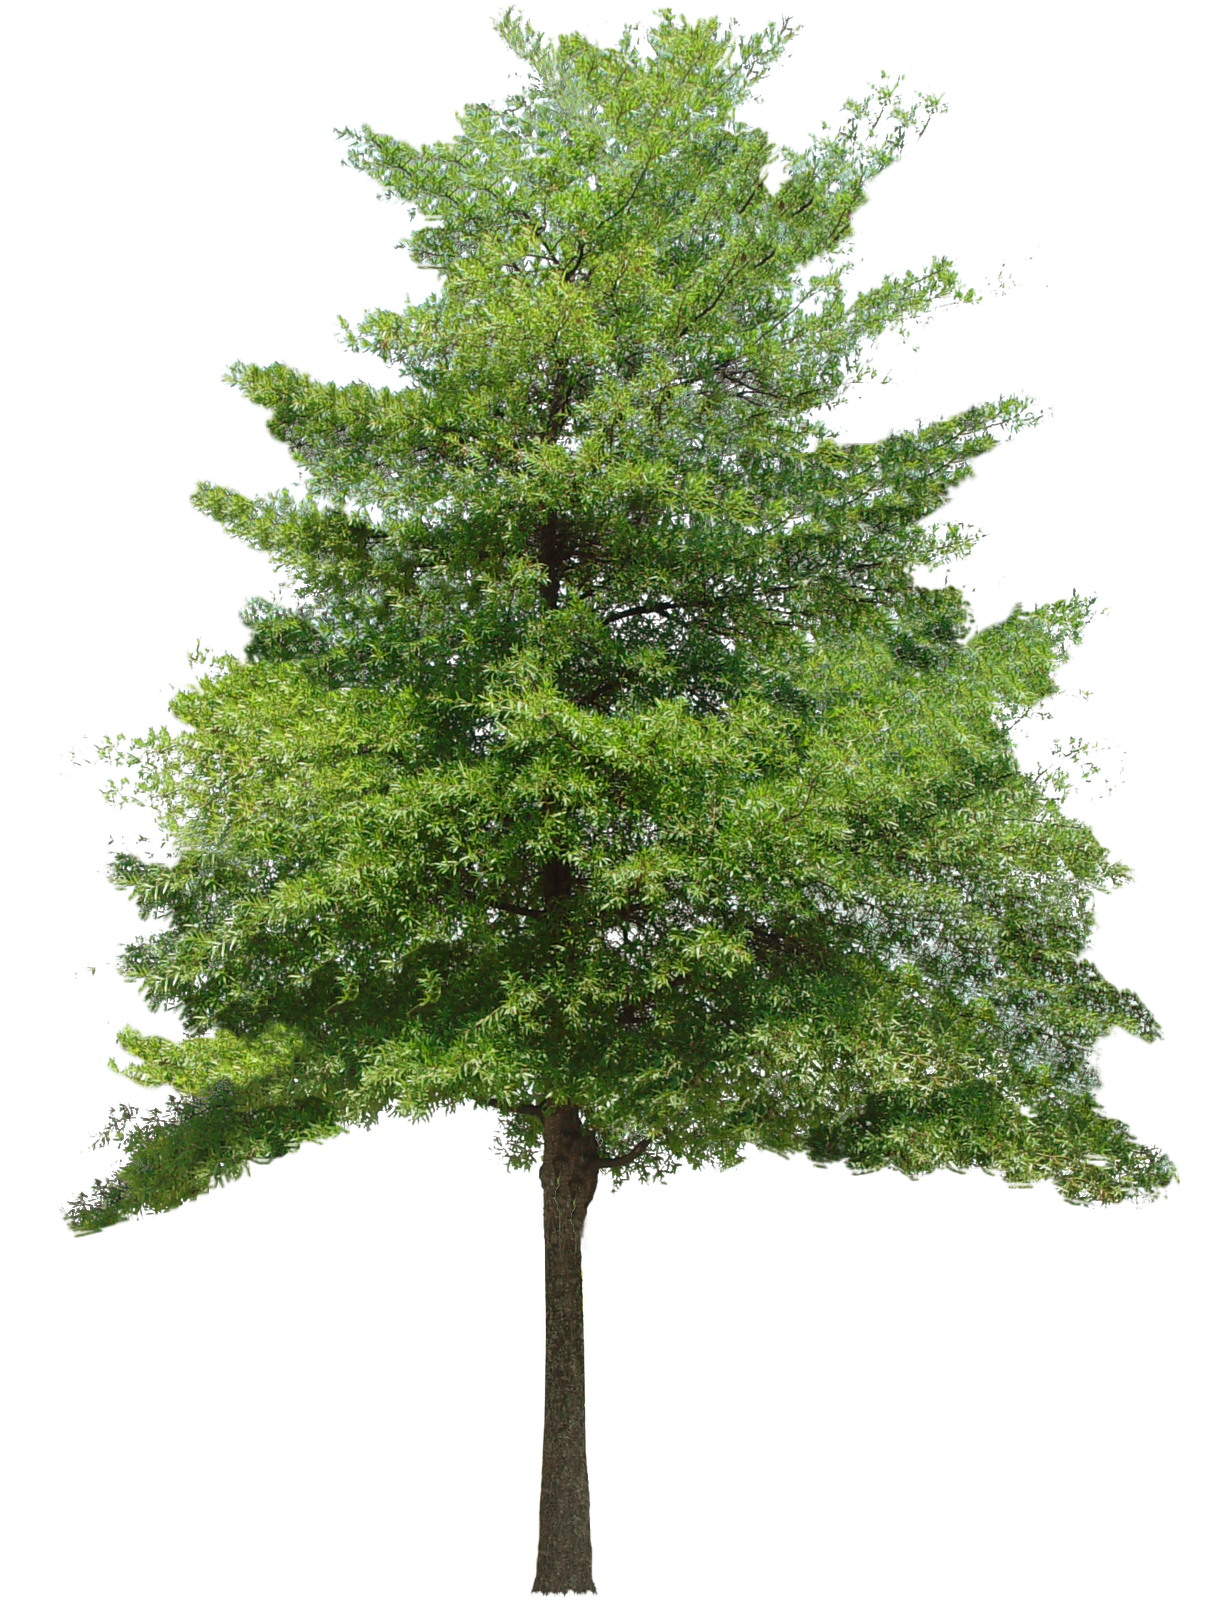 PNG HD Images Of Trees - 126426